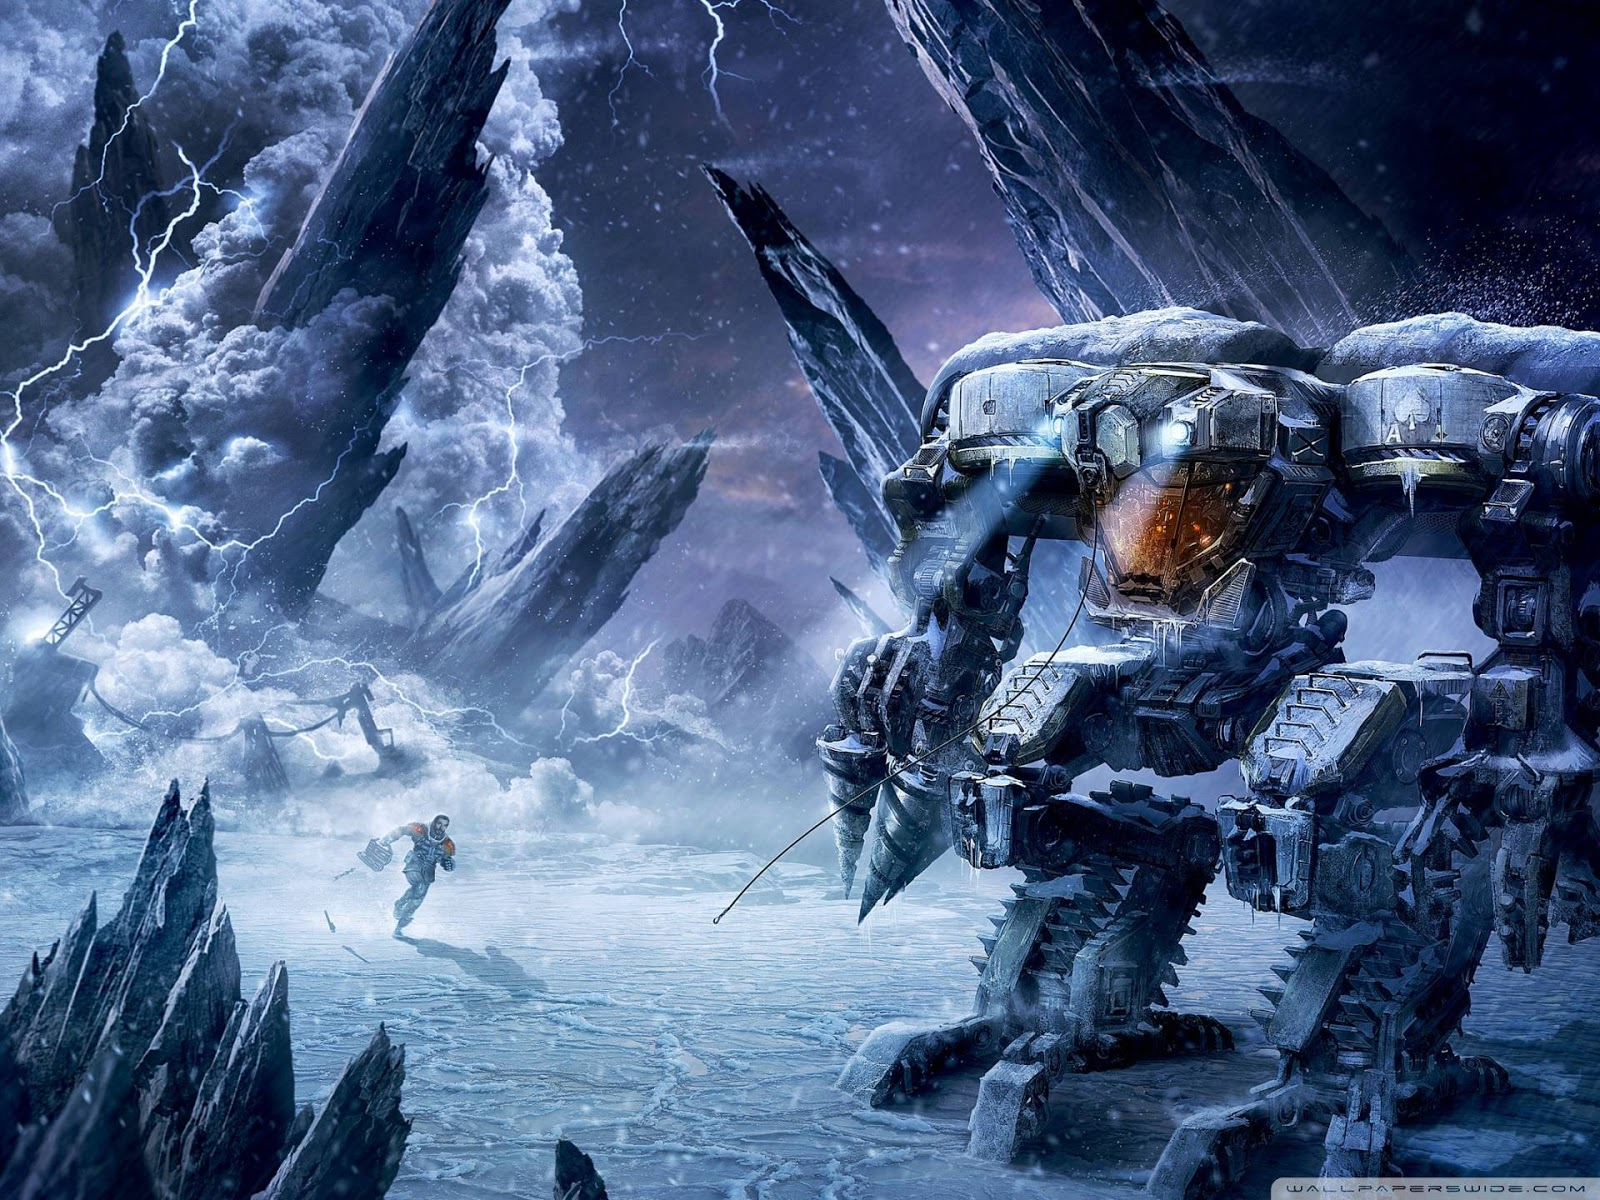 lost planet 3 4 lost planet 3 wallpaper download 1600x1200